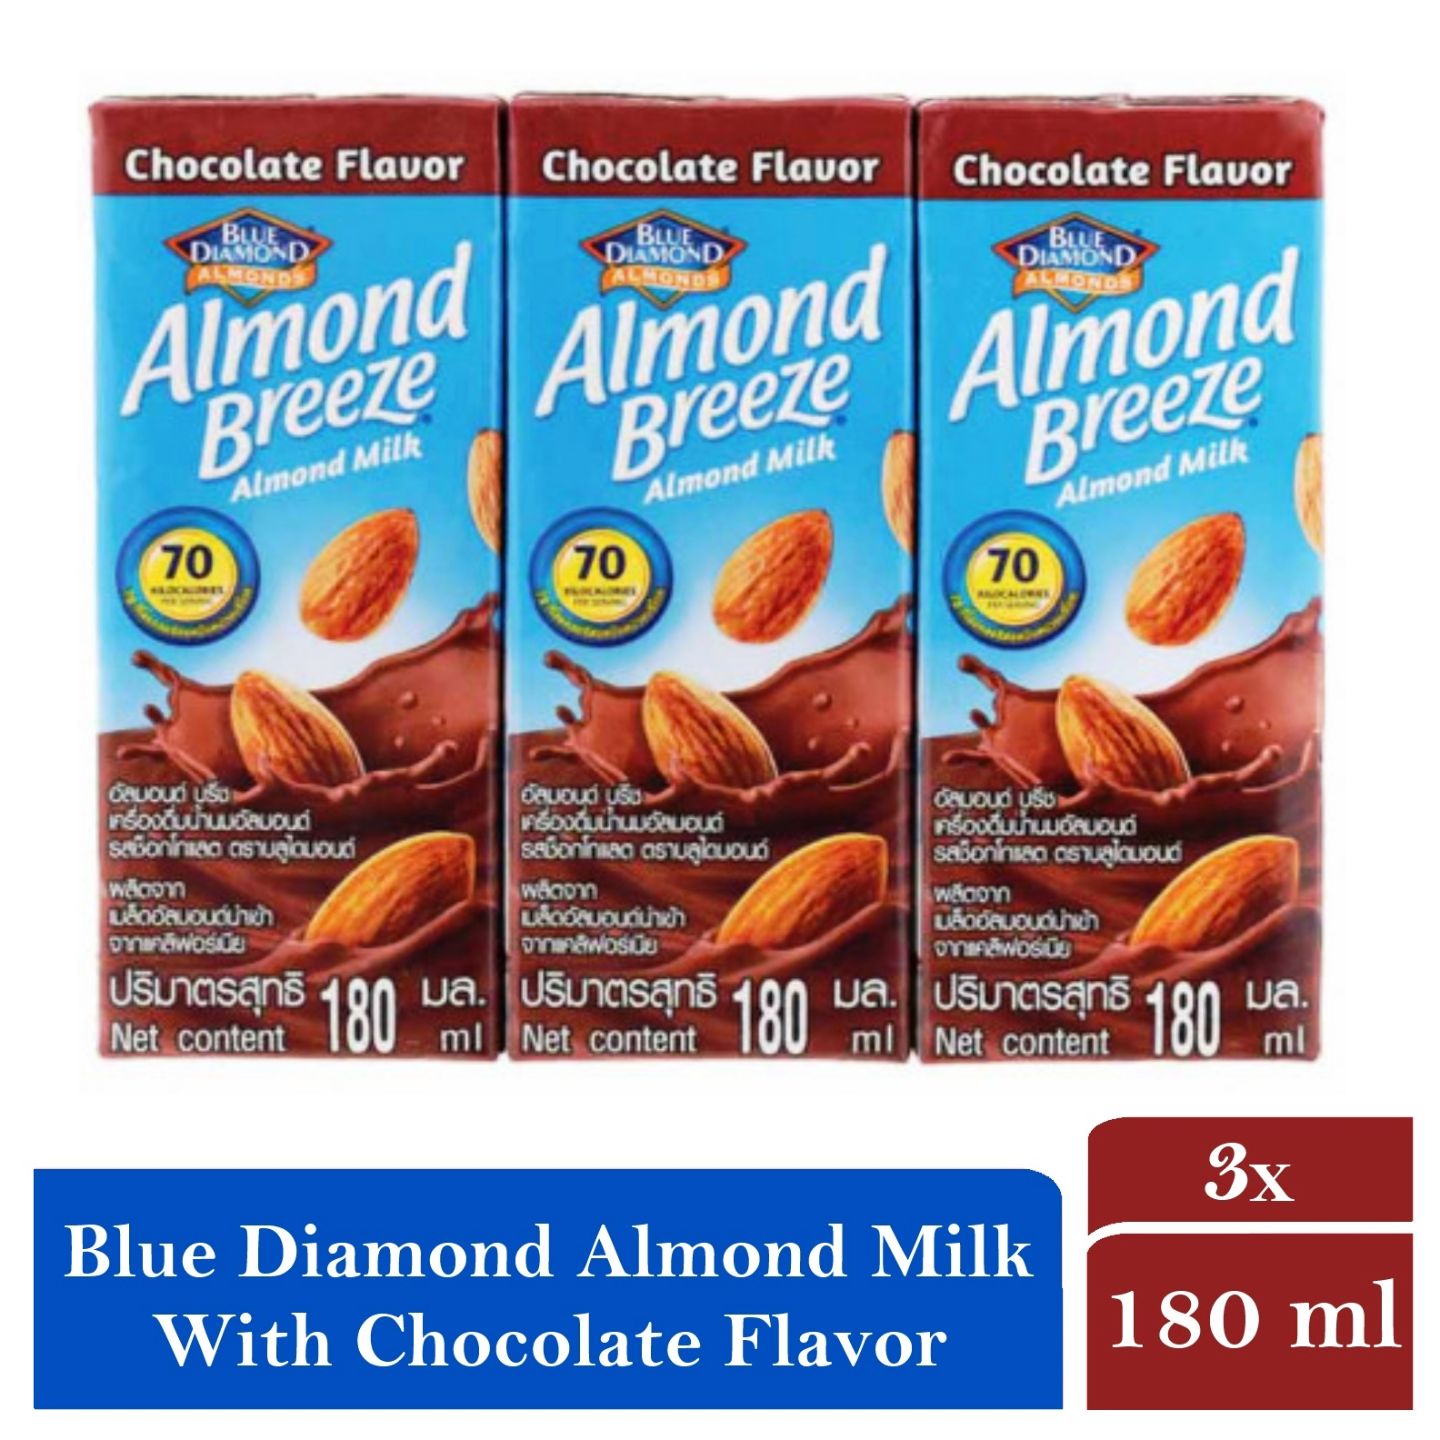 Blue Diamond Almond Milk with Chocolate Flavor Health Drink